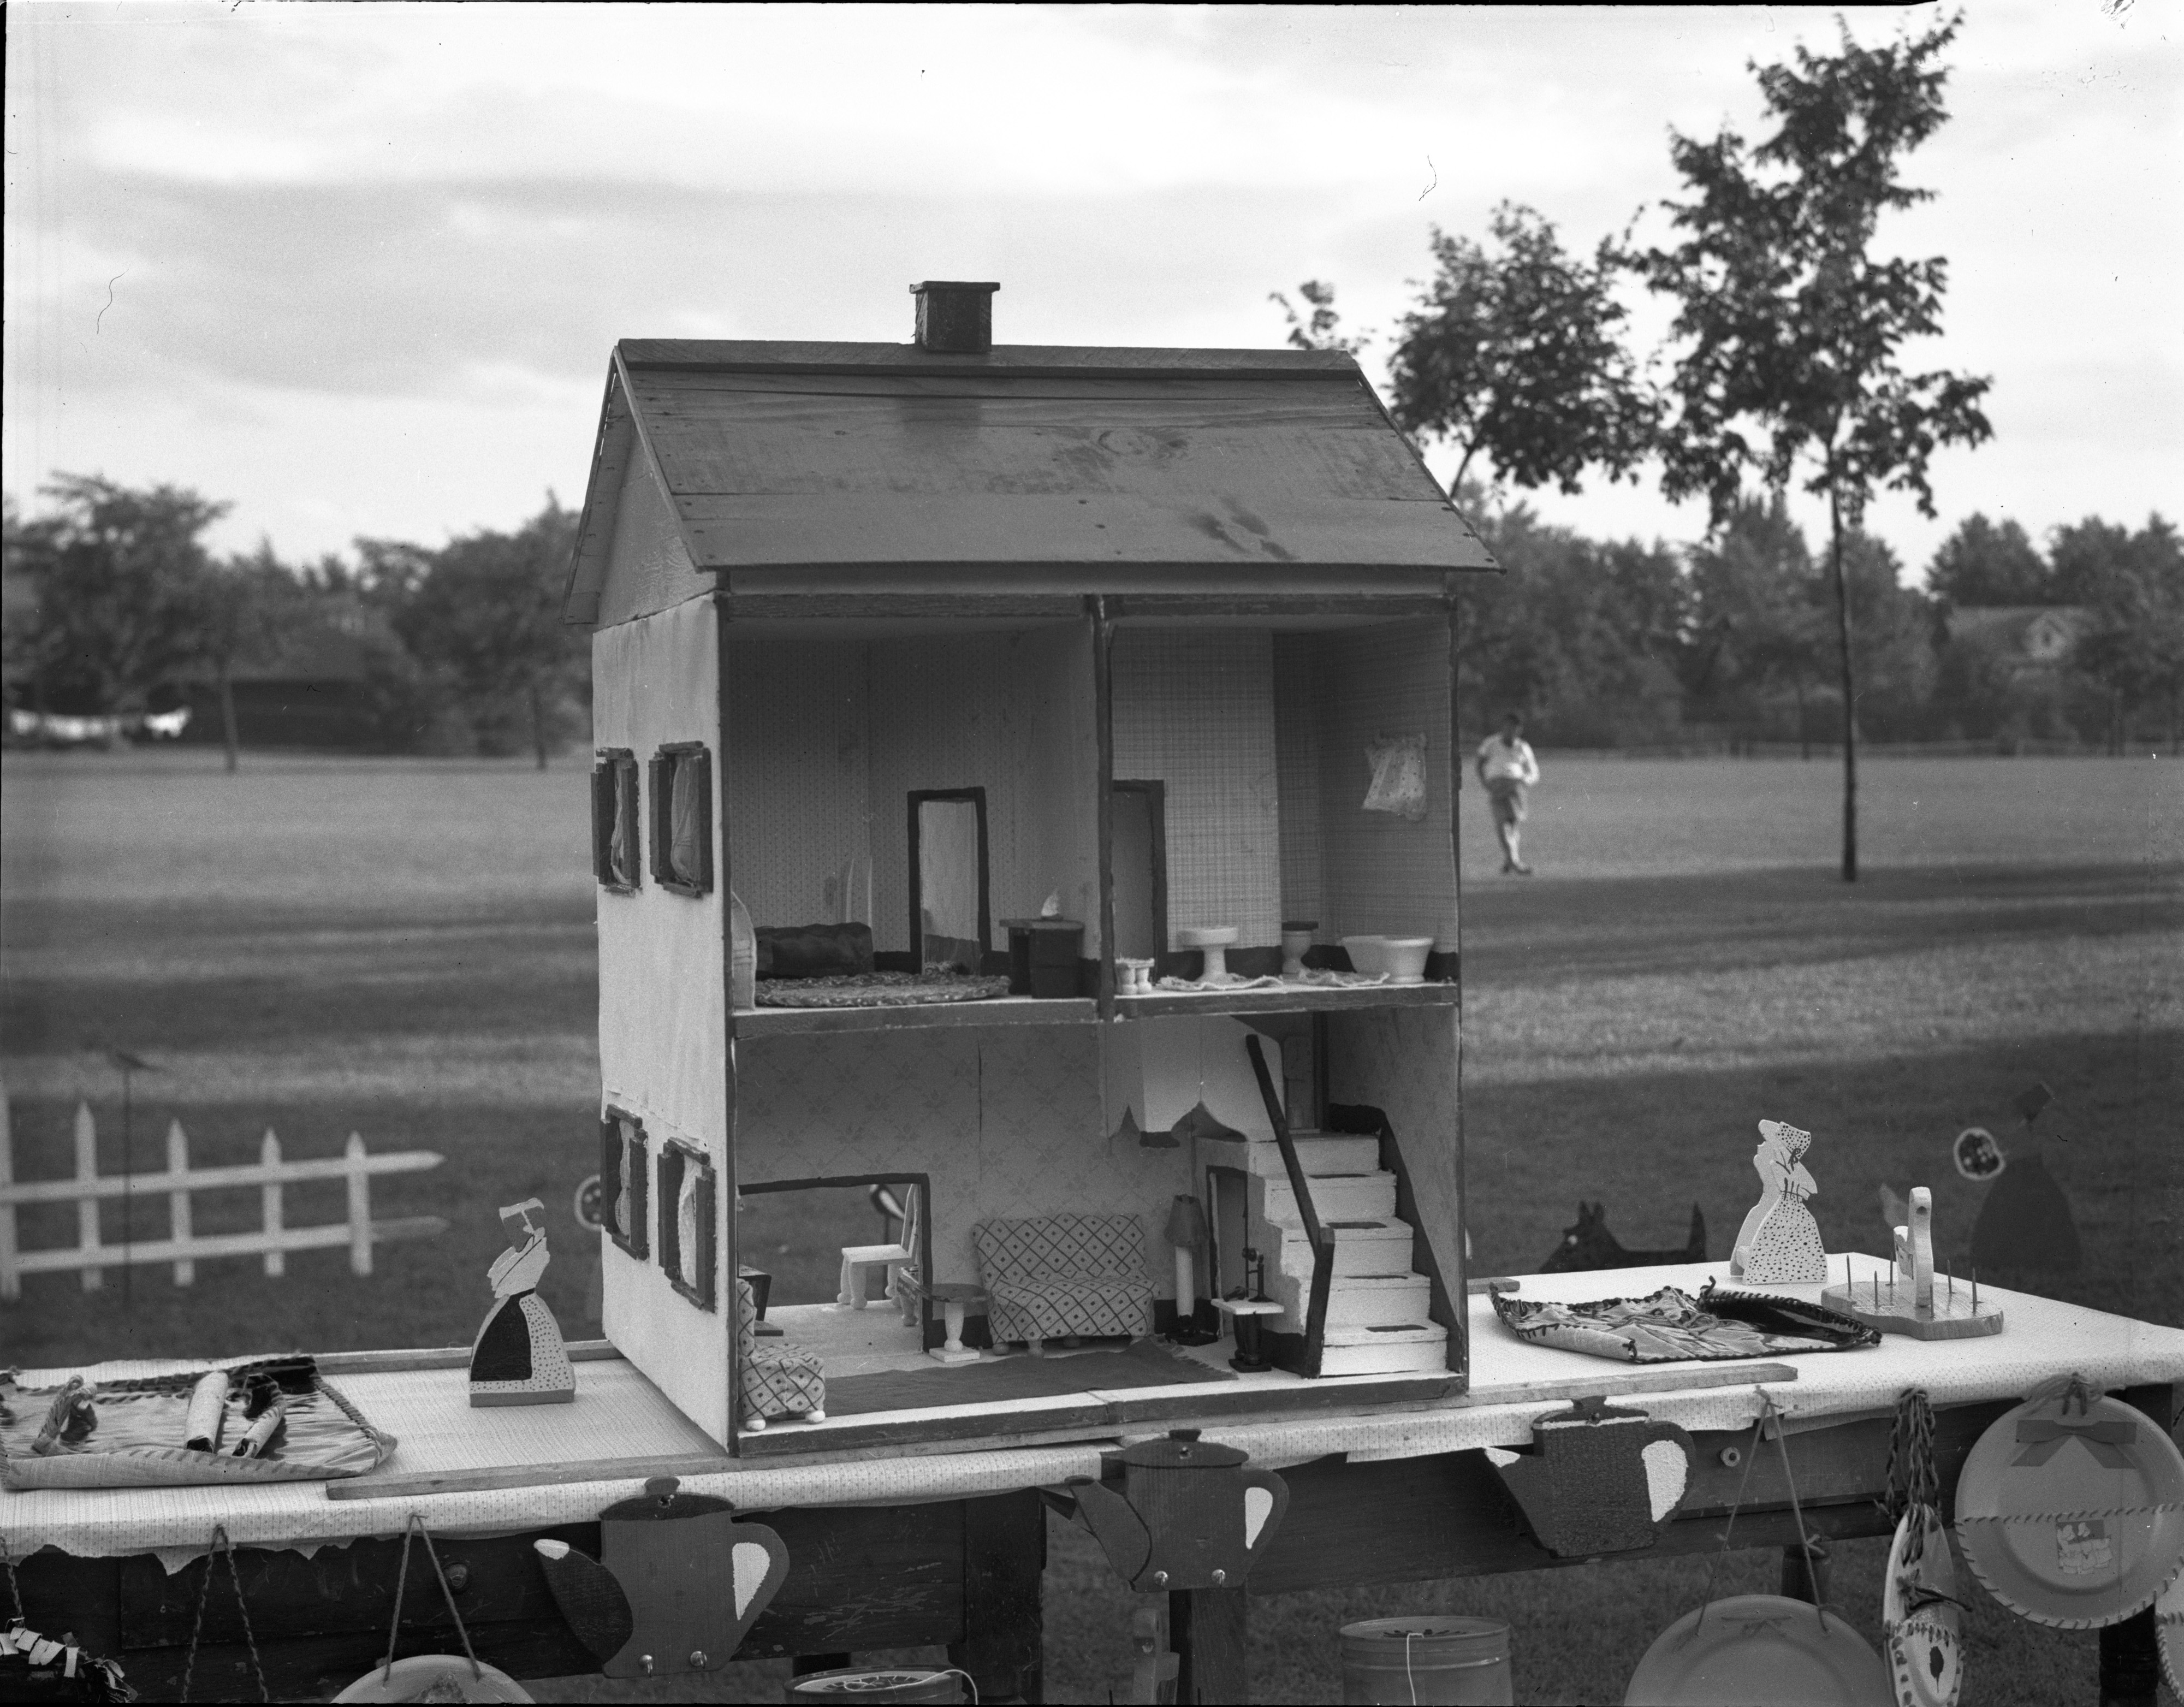 Children's Handicraft Dollhouse at Burns Park image